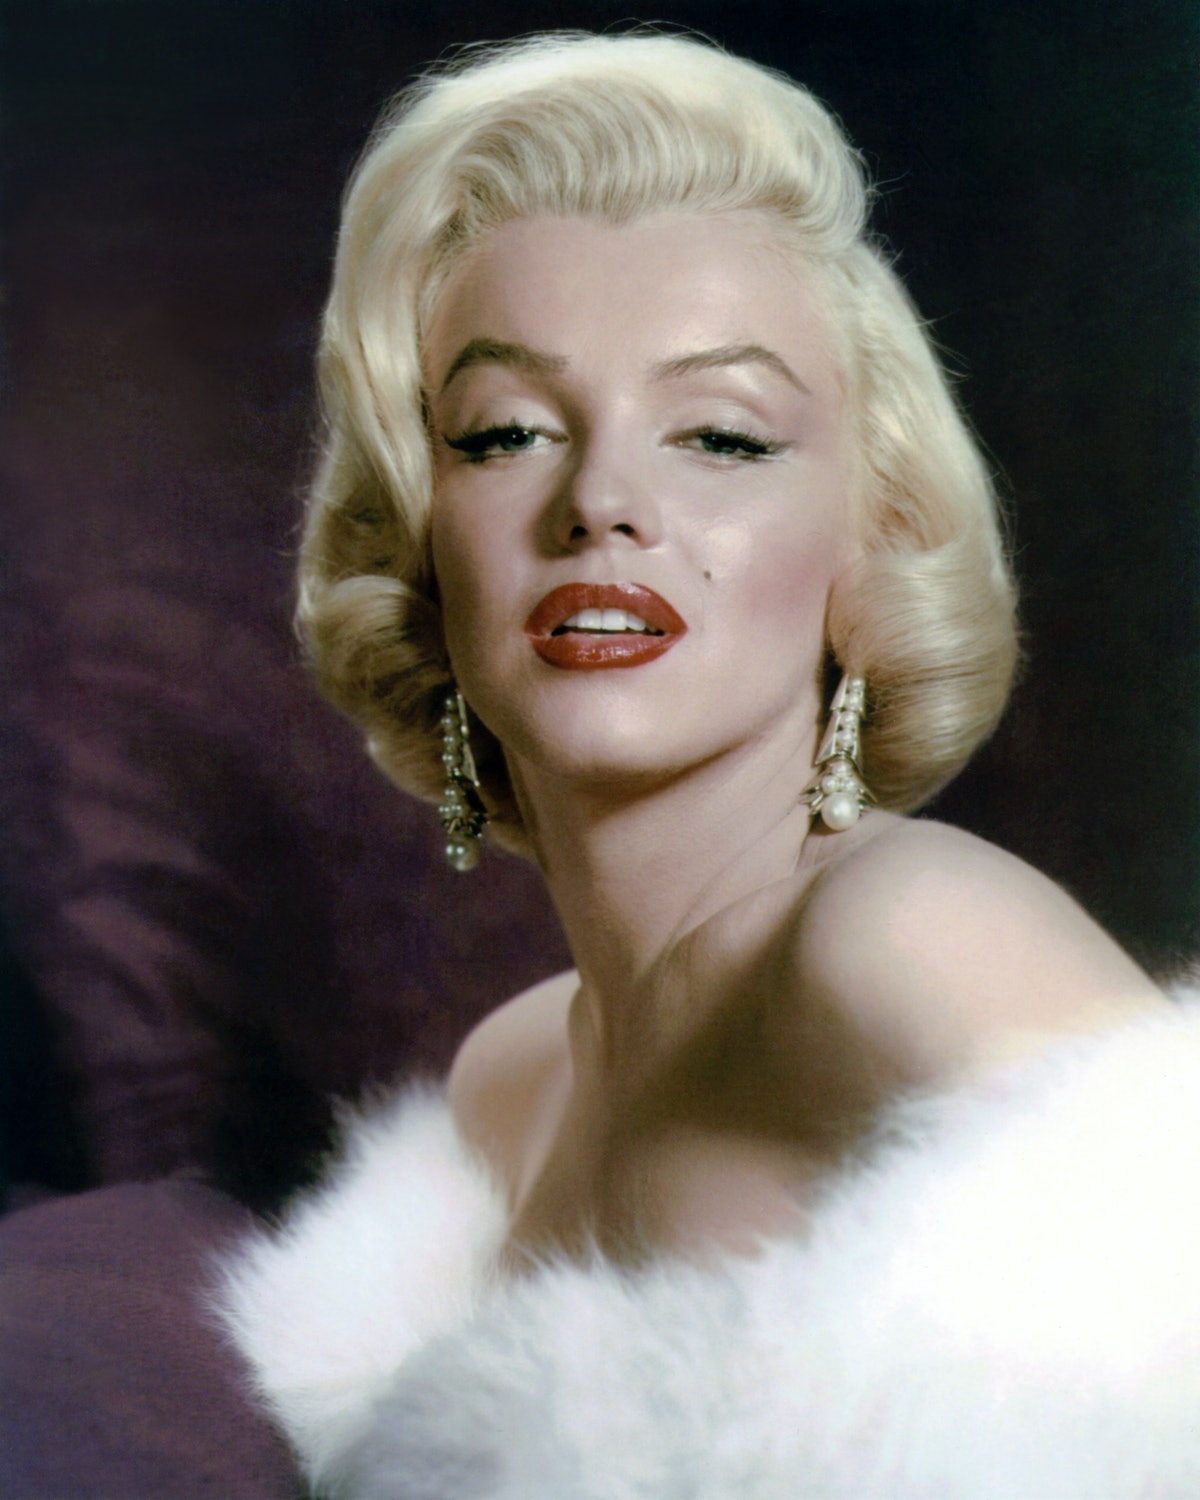 The 1950s saw liner along the full eyelid, a la Audrey Hepburn and Marilyn Monroe.